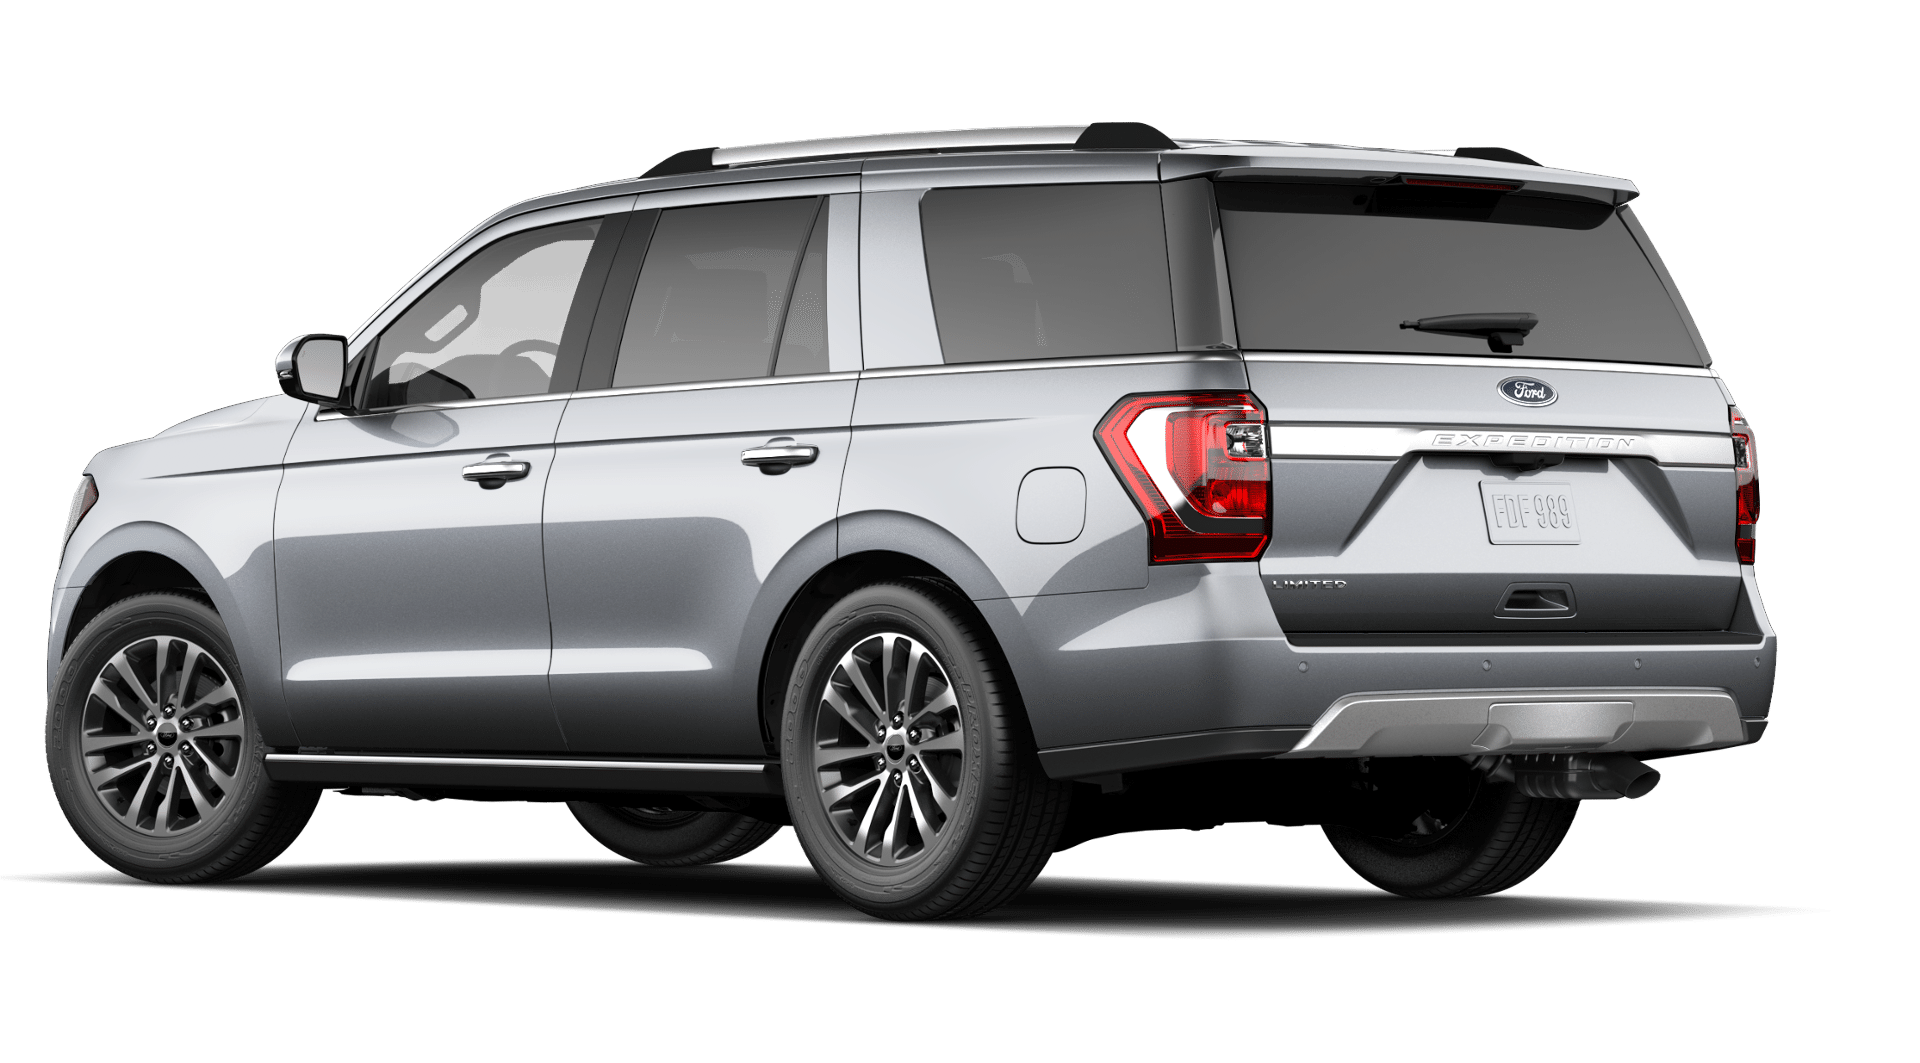 2020 Ford Expedition in Iconic Silver